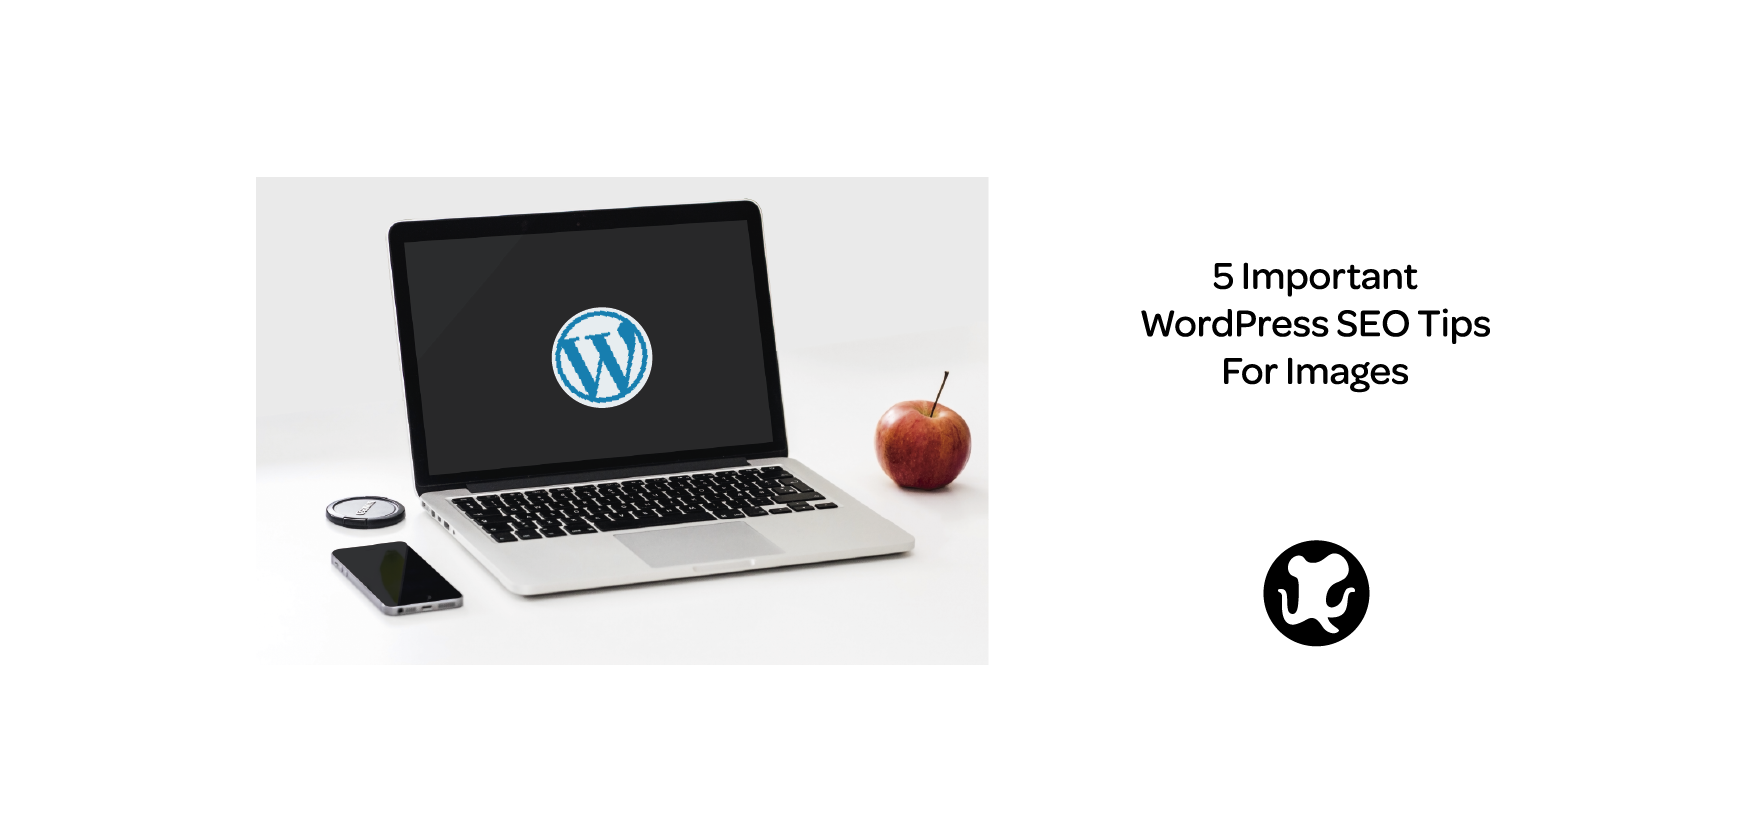 5 Important WordPress SEO Tips For Images